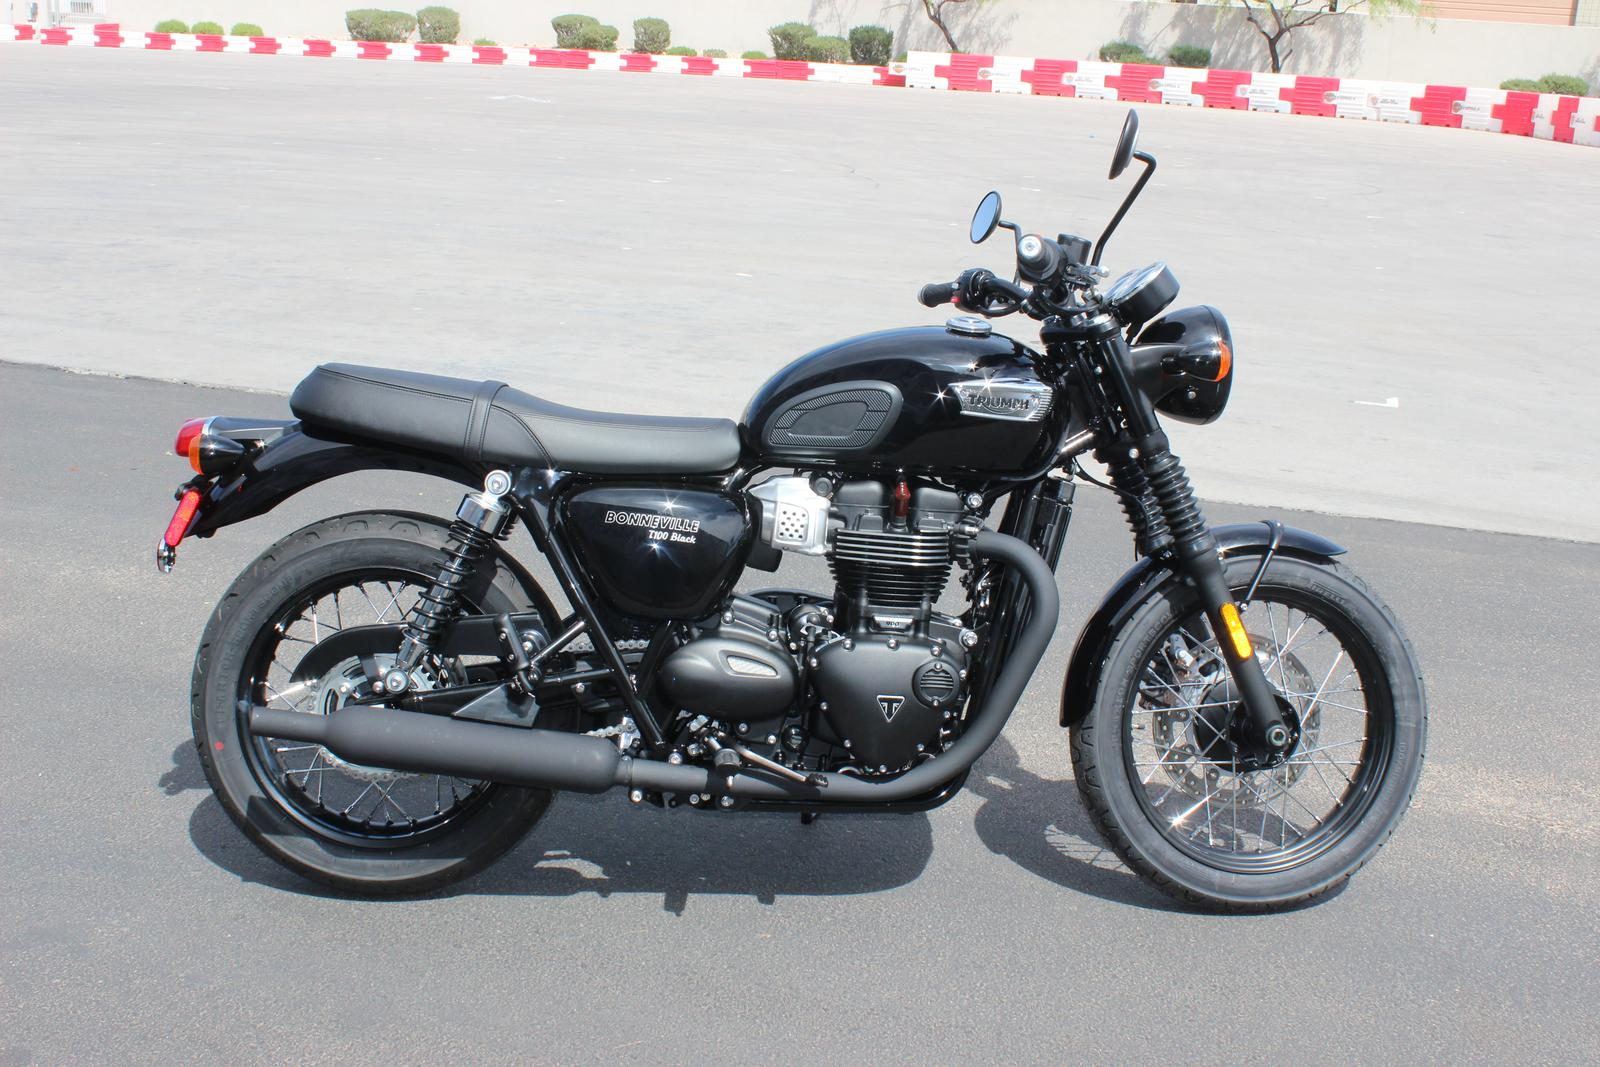 2018 Triumph Bonneville T100 Black For Sale In Scottsdale Az Go